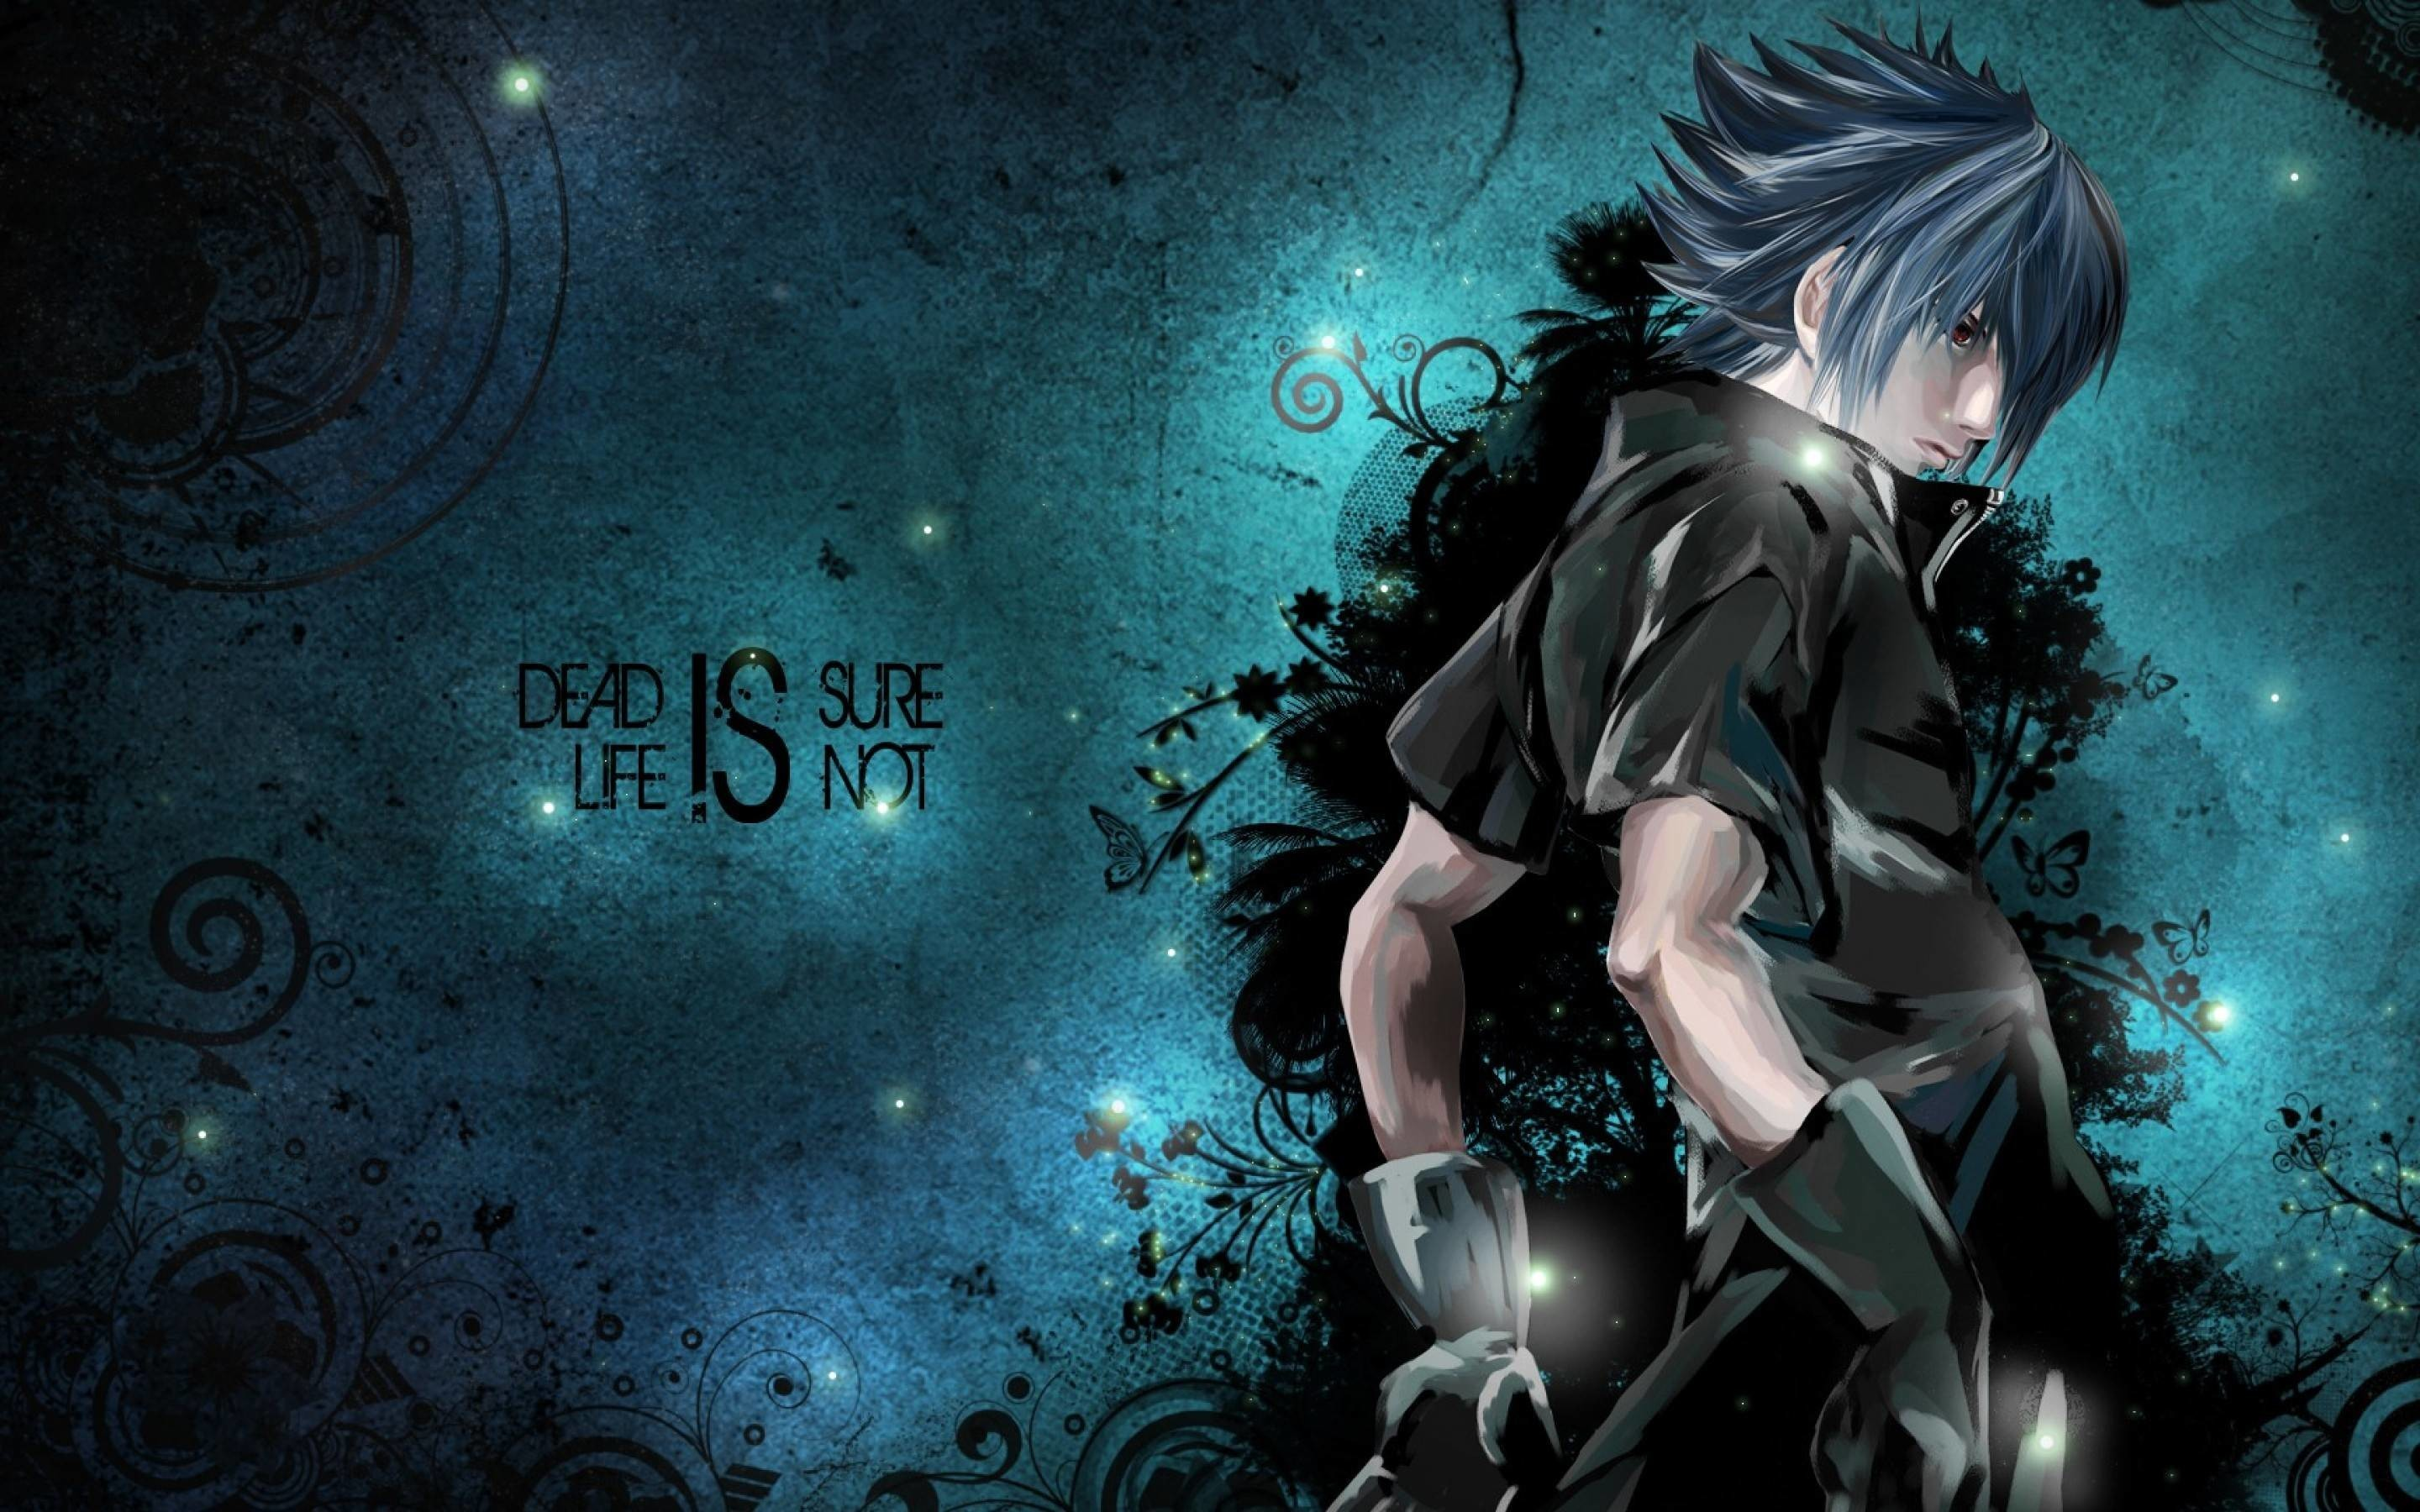 Anime Wallpaper 1360 X 768 70 Images